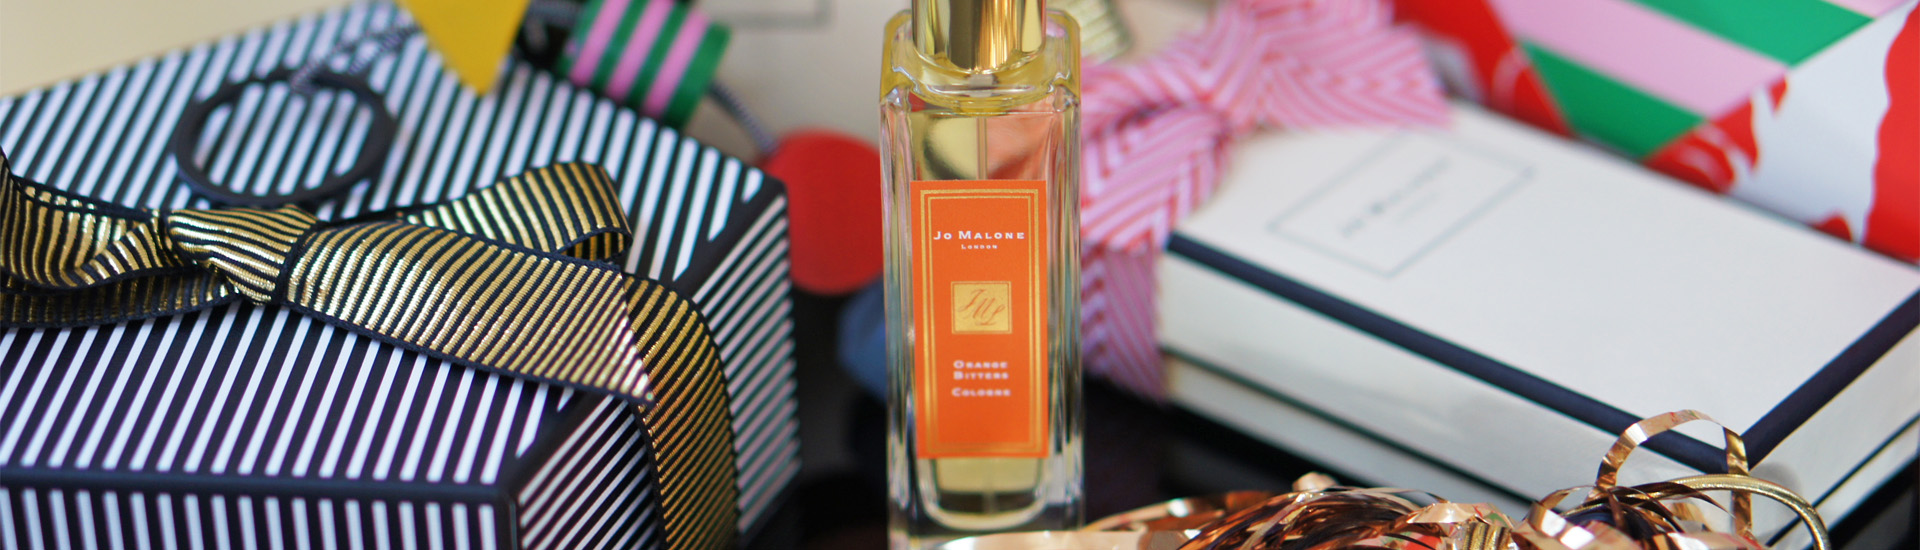 Gute Laune im Flacon: Jo Malone London Orange Bitters Cologne